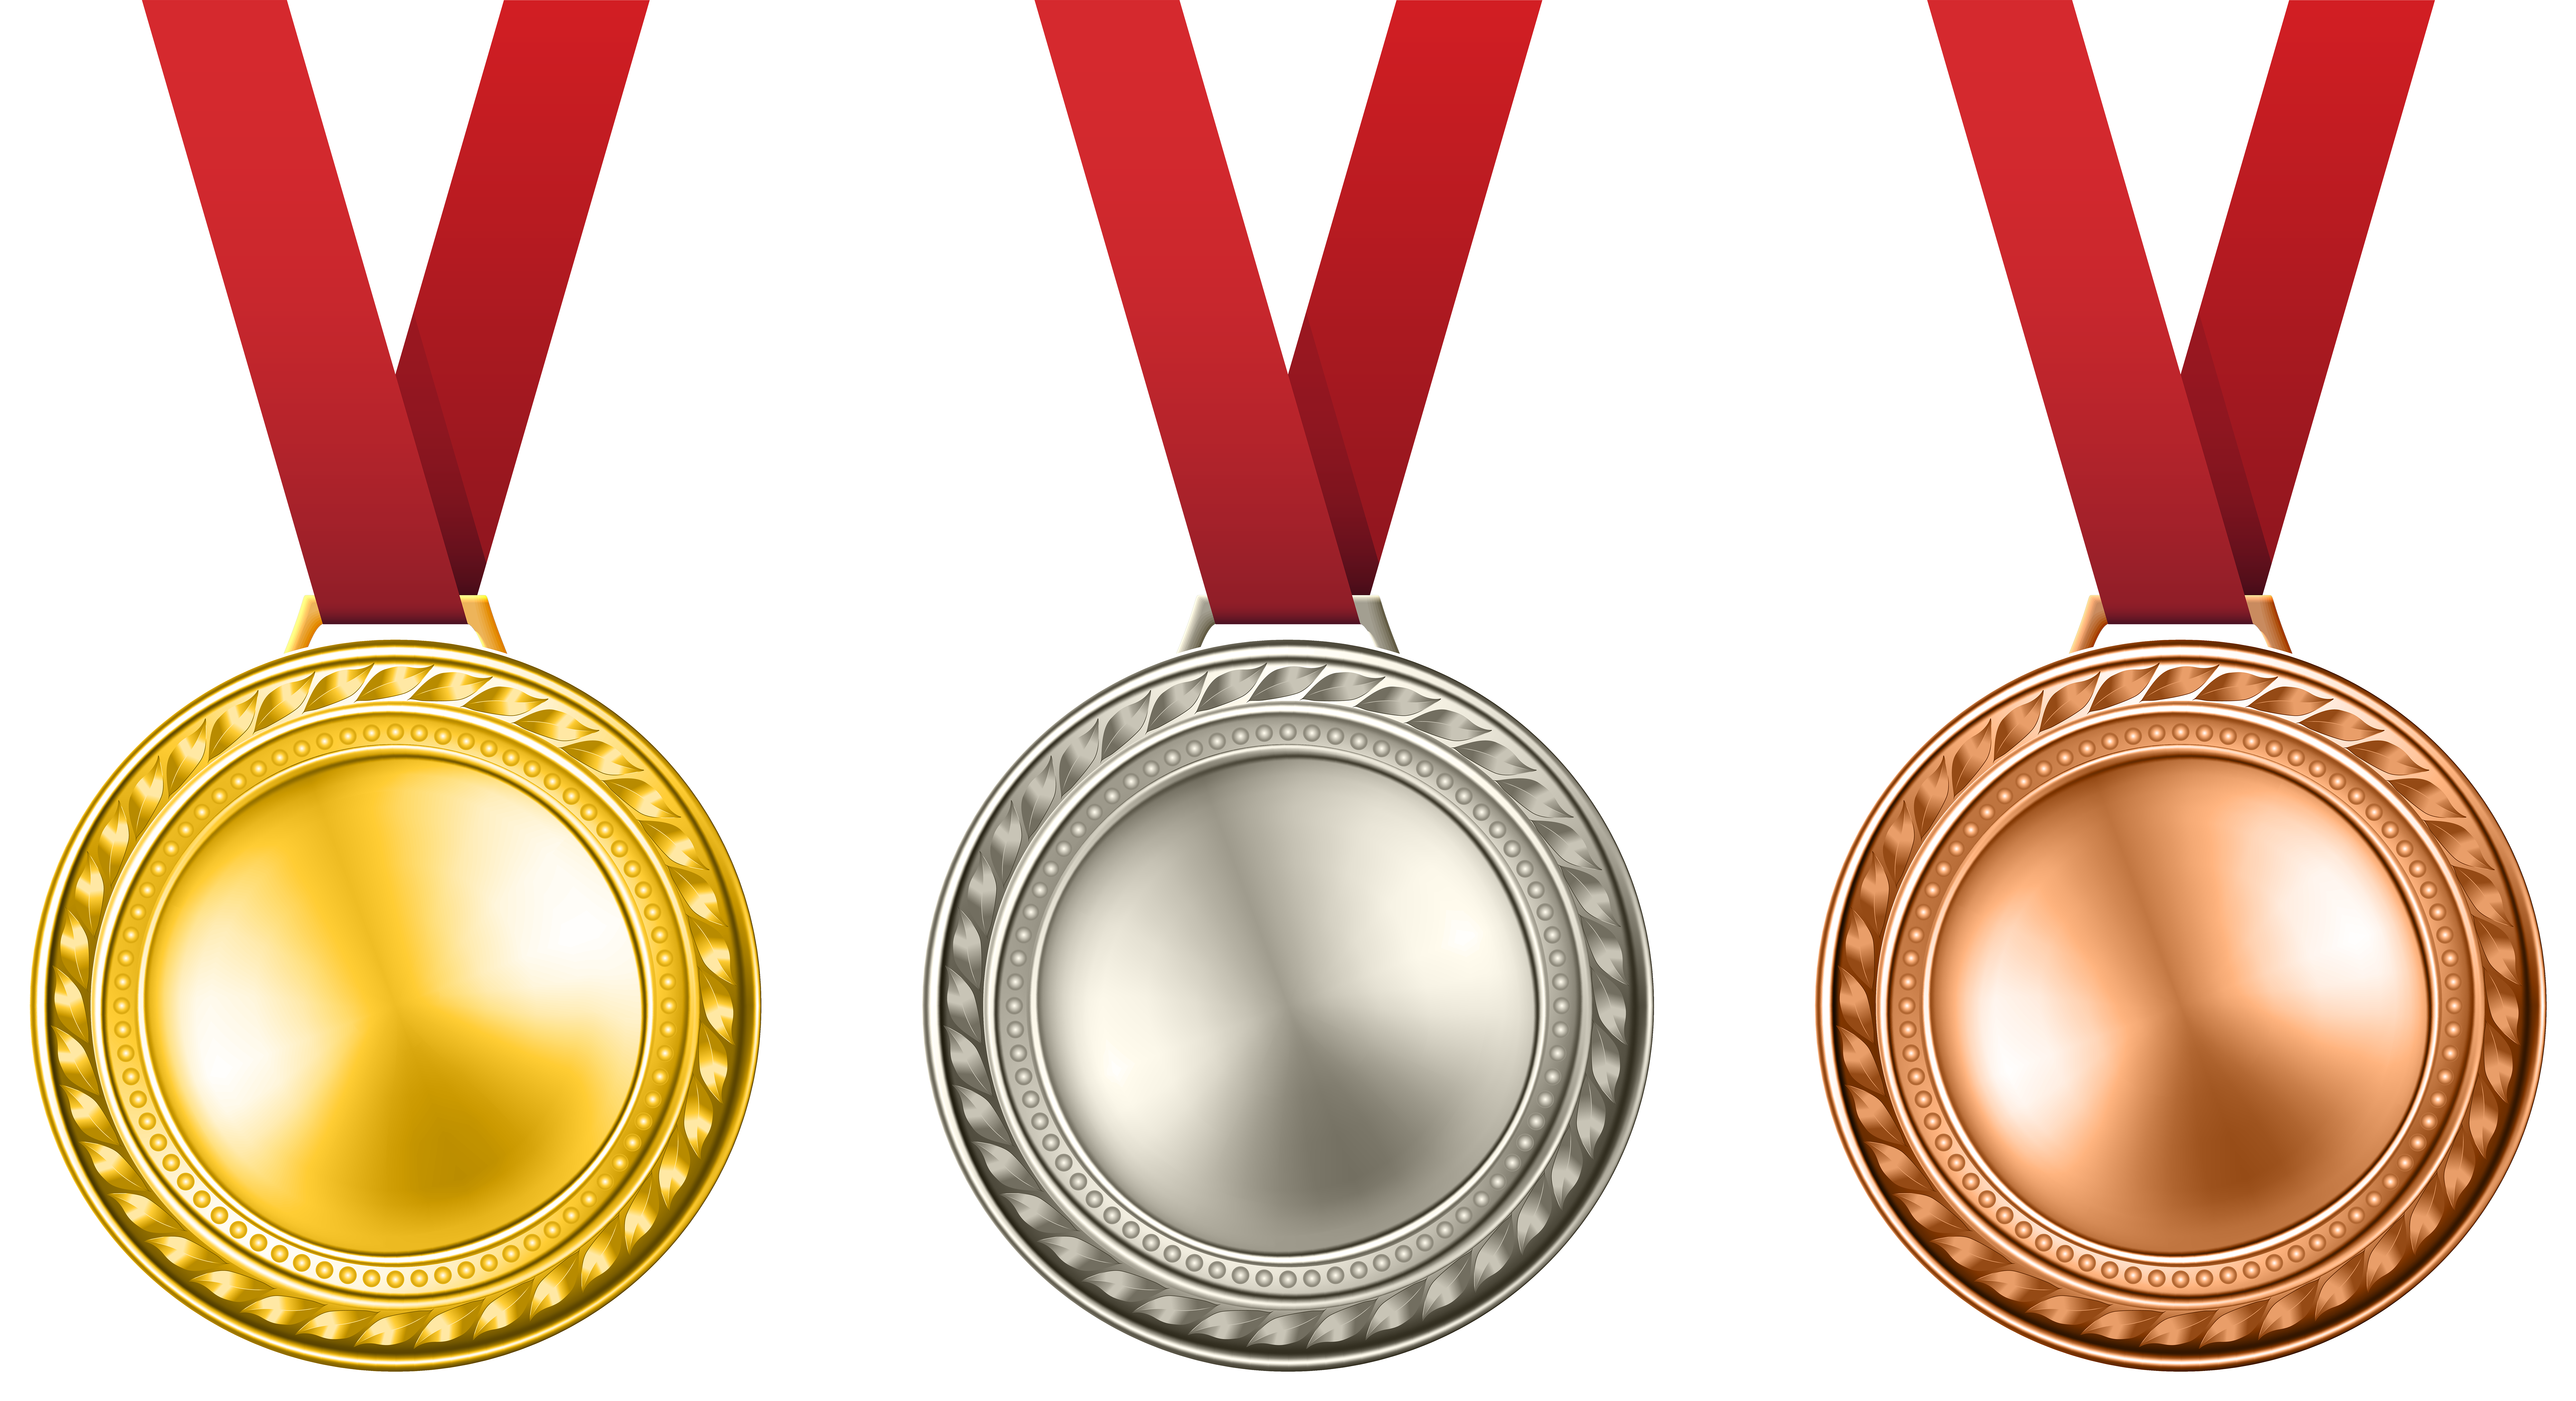 Medal clipart academic medal. Medals set transparent png